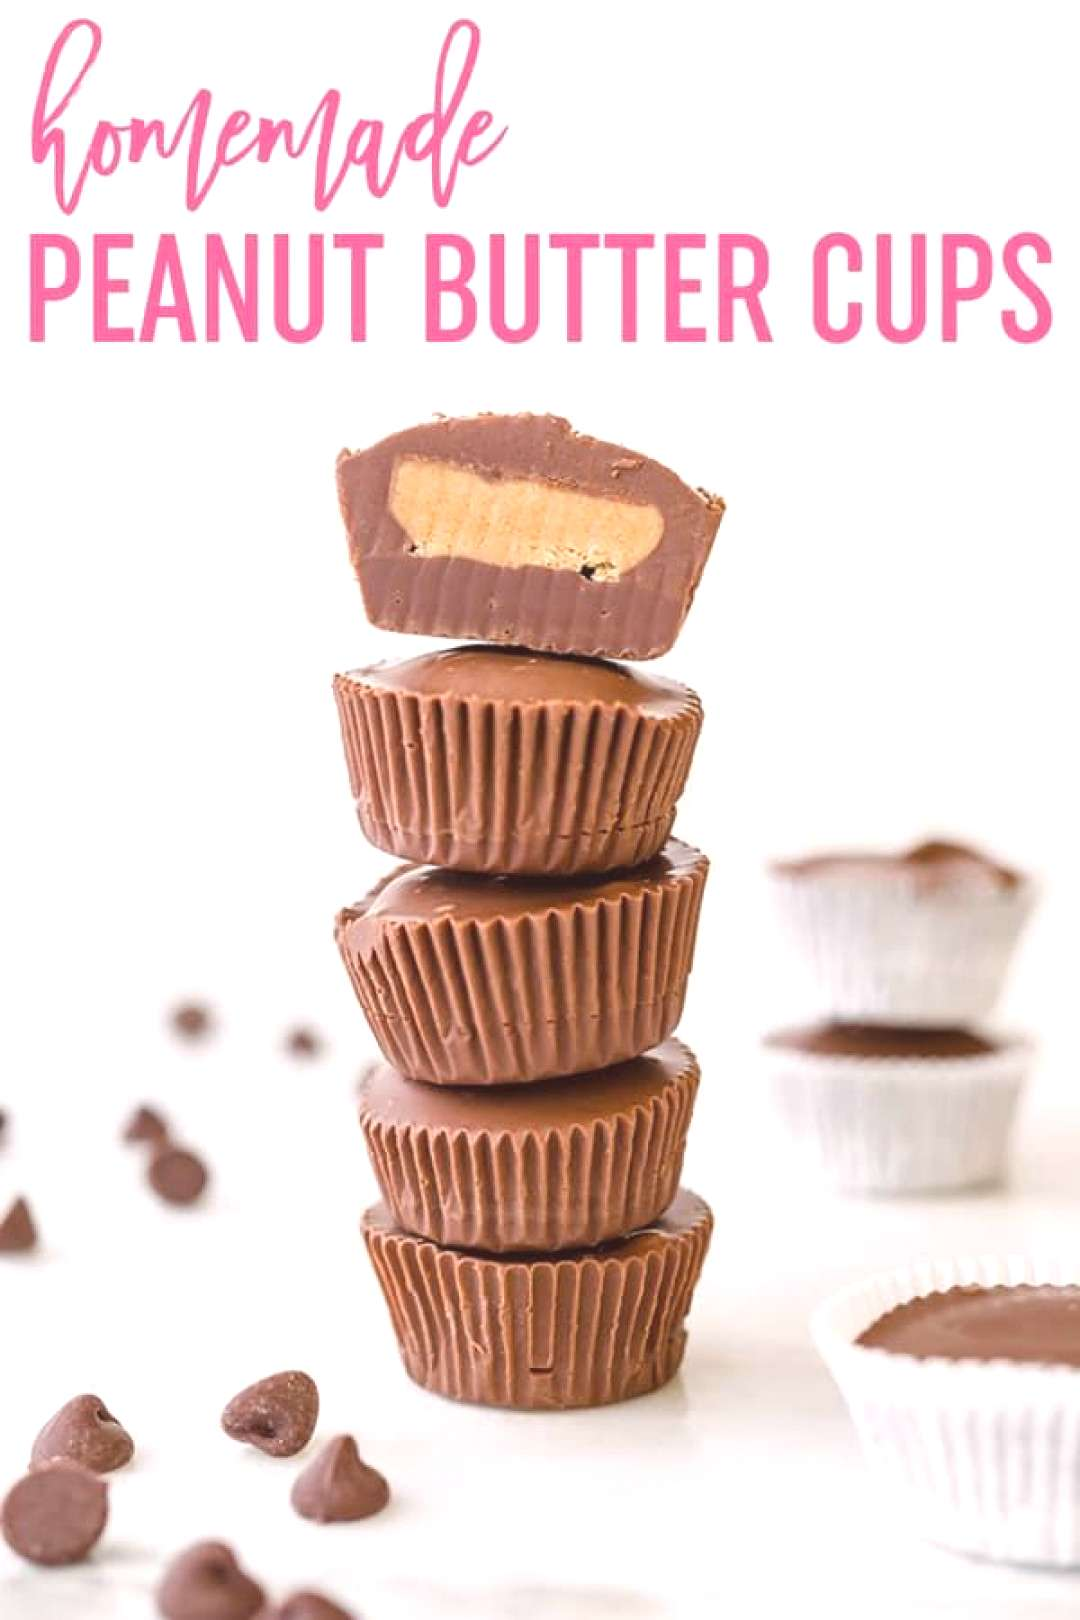 Homemade Peanut Butter Cups :: A homemade version of Reese's peanut butter cups. This easy recipe c